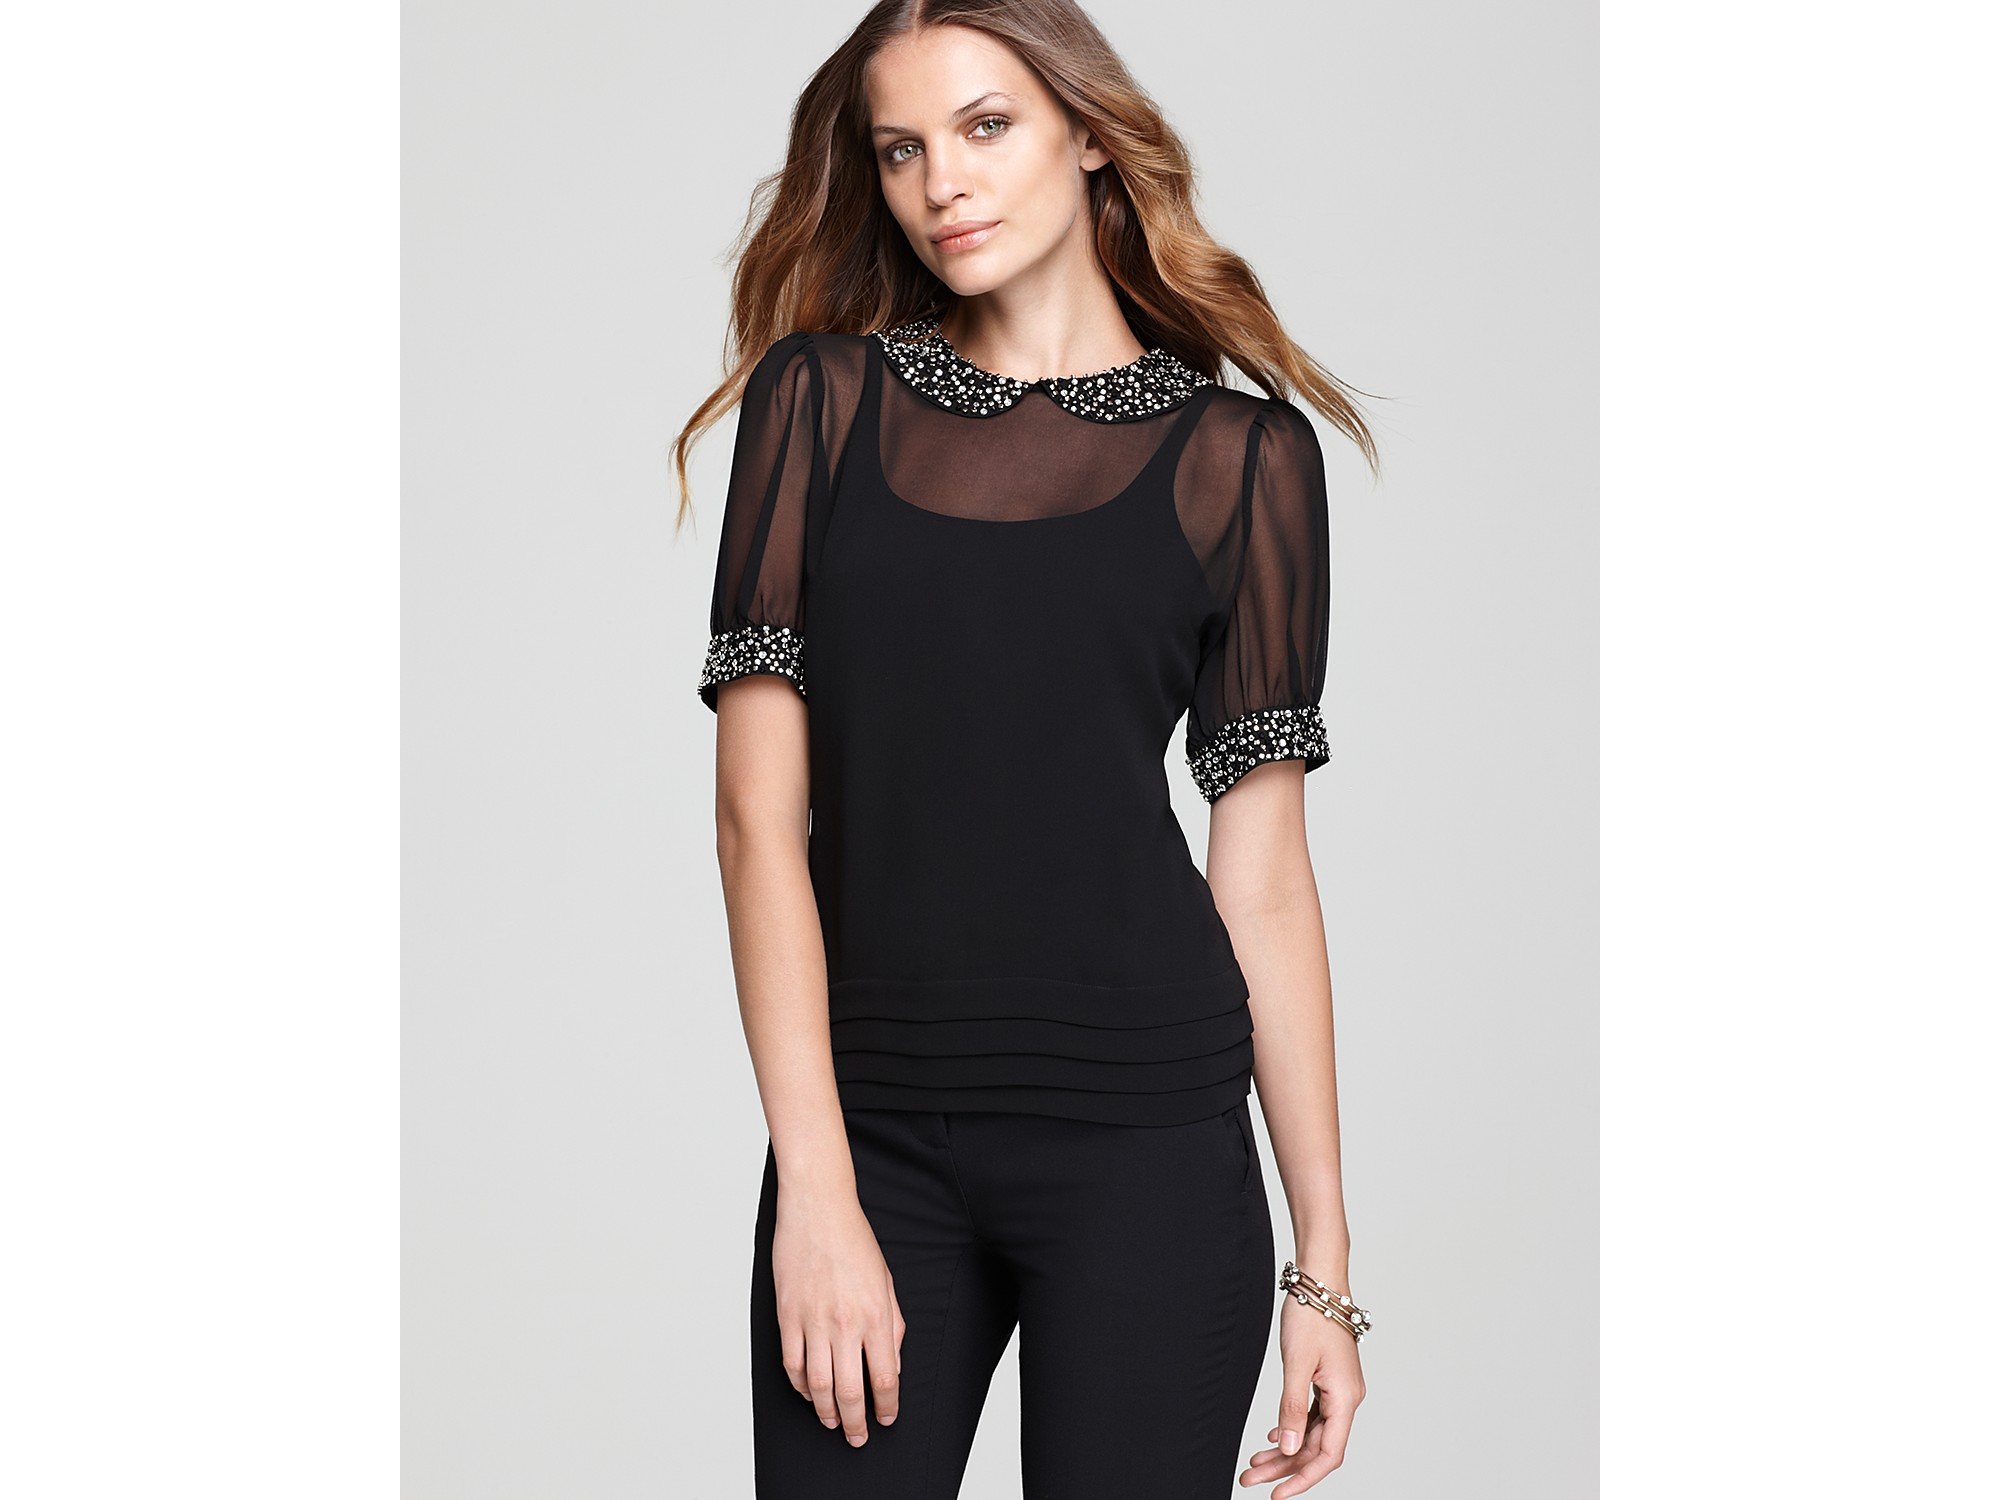 Lyst Vince Camuto Short Sleeve Jeweled Trim Peter Pan Blouse In Black